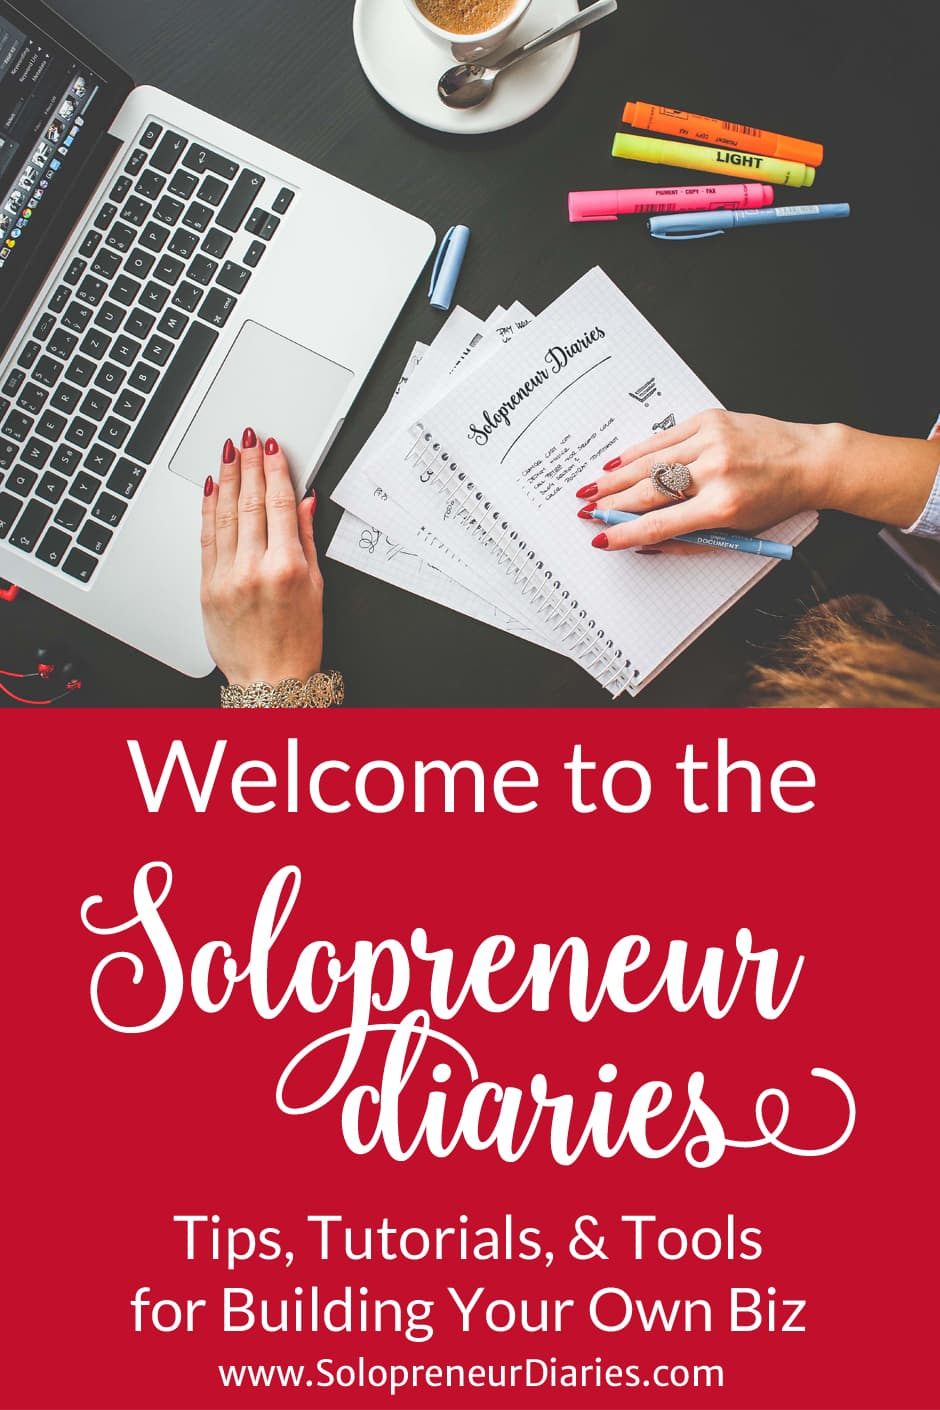 Solopreneur Diaries is for women who are trying to find work/life balance in order to live their dream lives. Women who want to build a business for themselves, rather than for someone else. Women who want to thrive and succeed on their own terms, in business and in life. From the big picture to the day-to-day details, we will provide tips, tutorials, and tools to help you grow your own business. Click through for more. . .